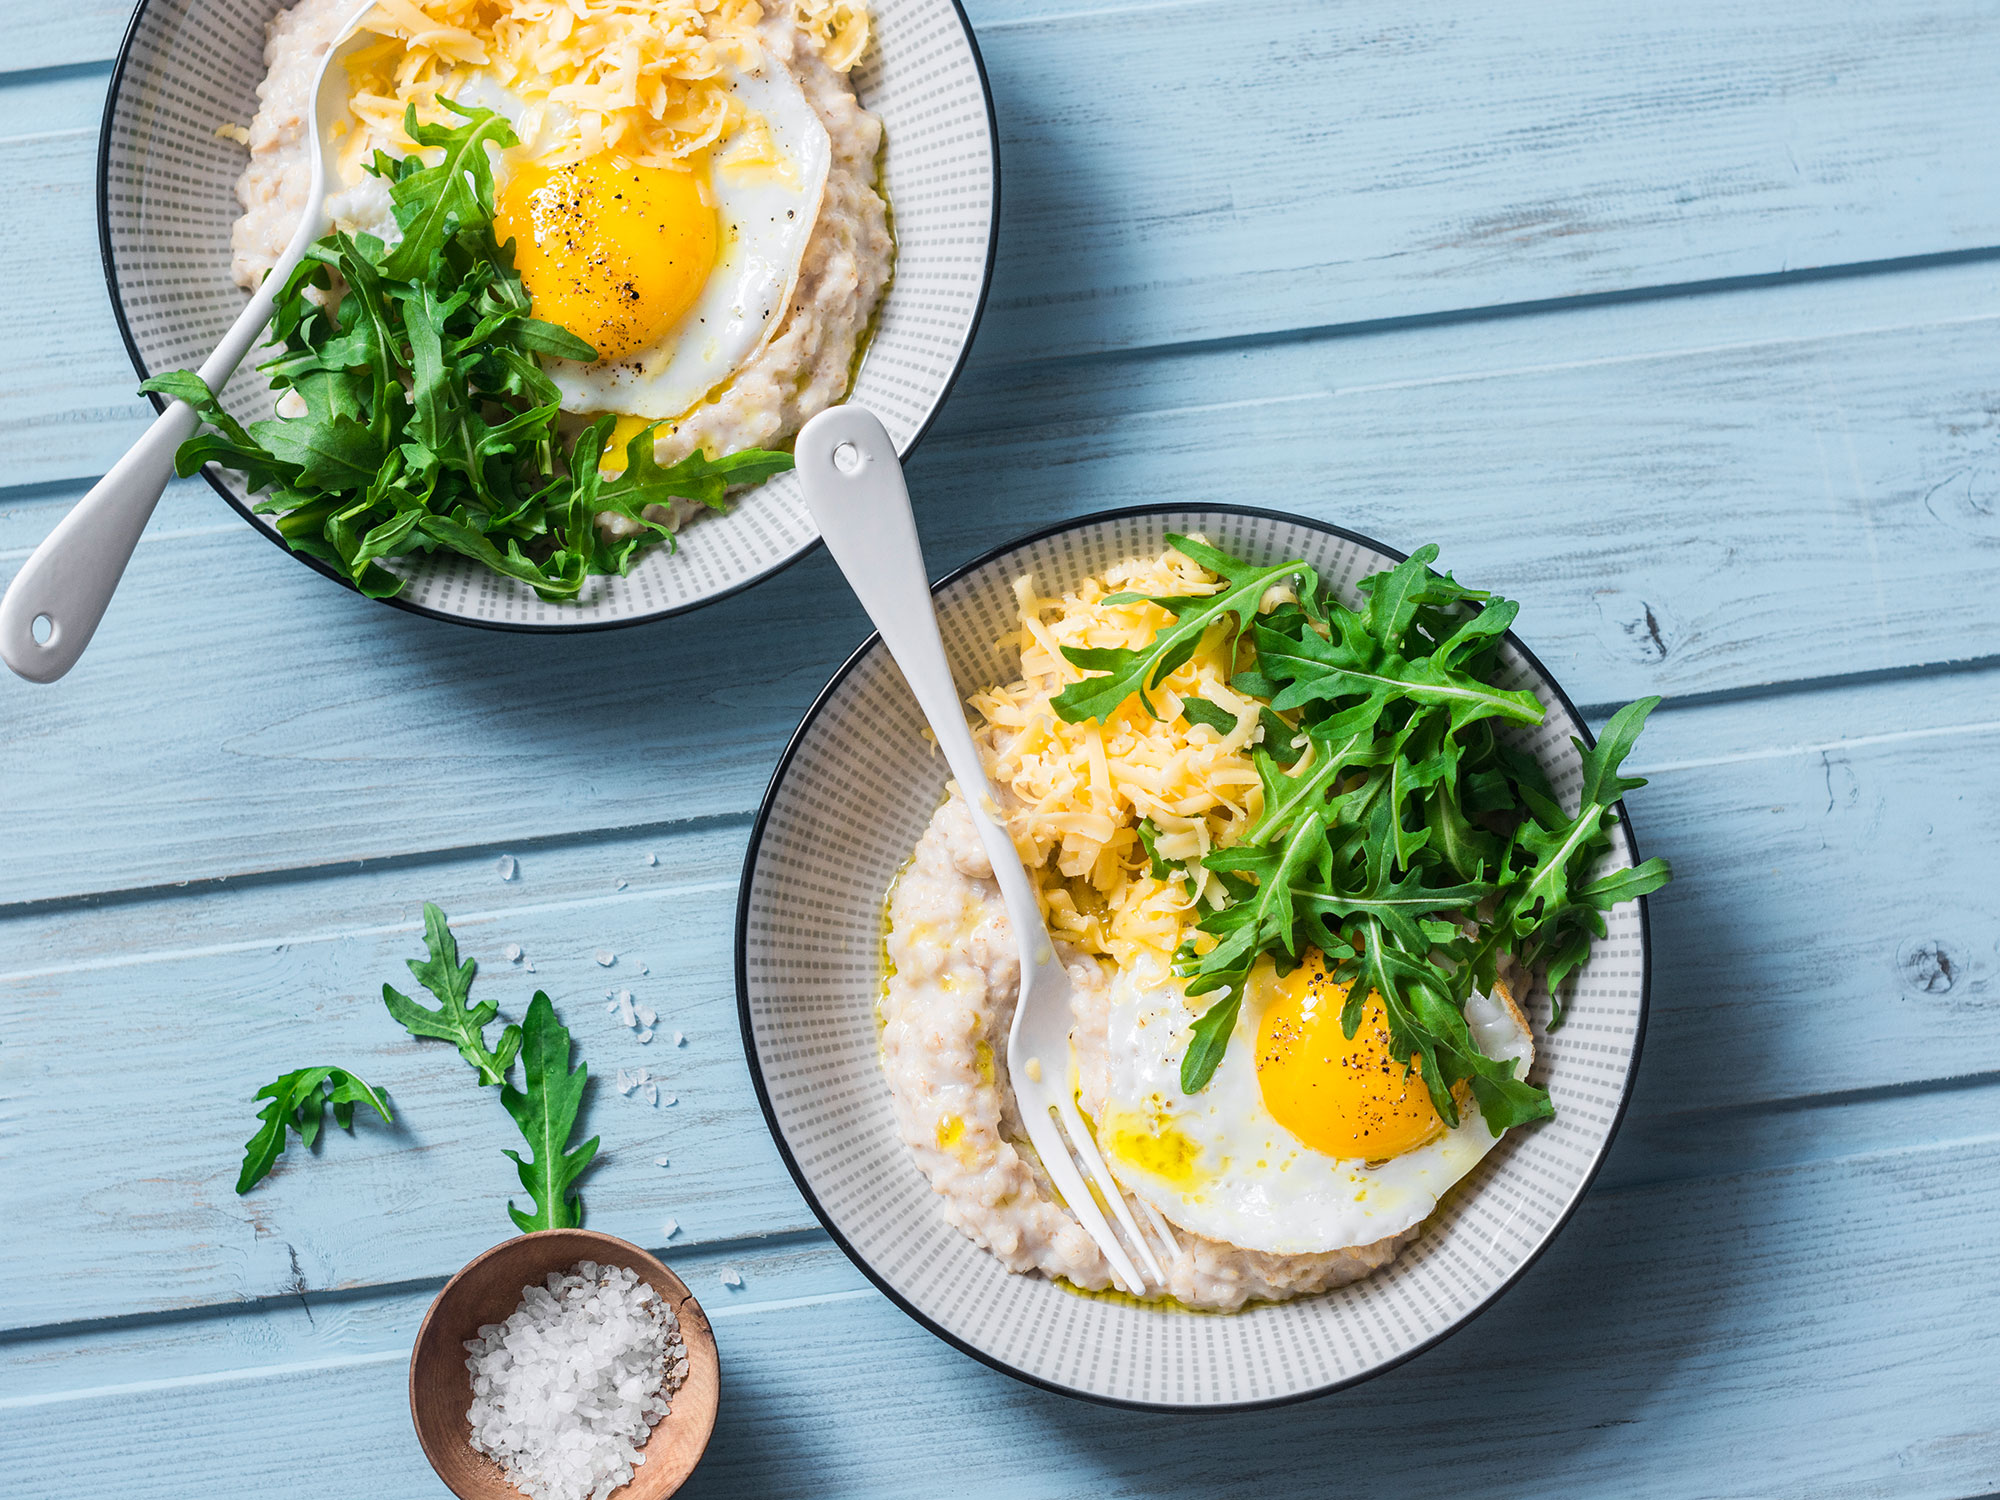 How to Eat More Vegetables at Breakfast